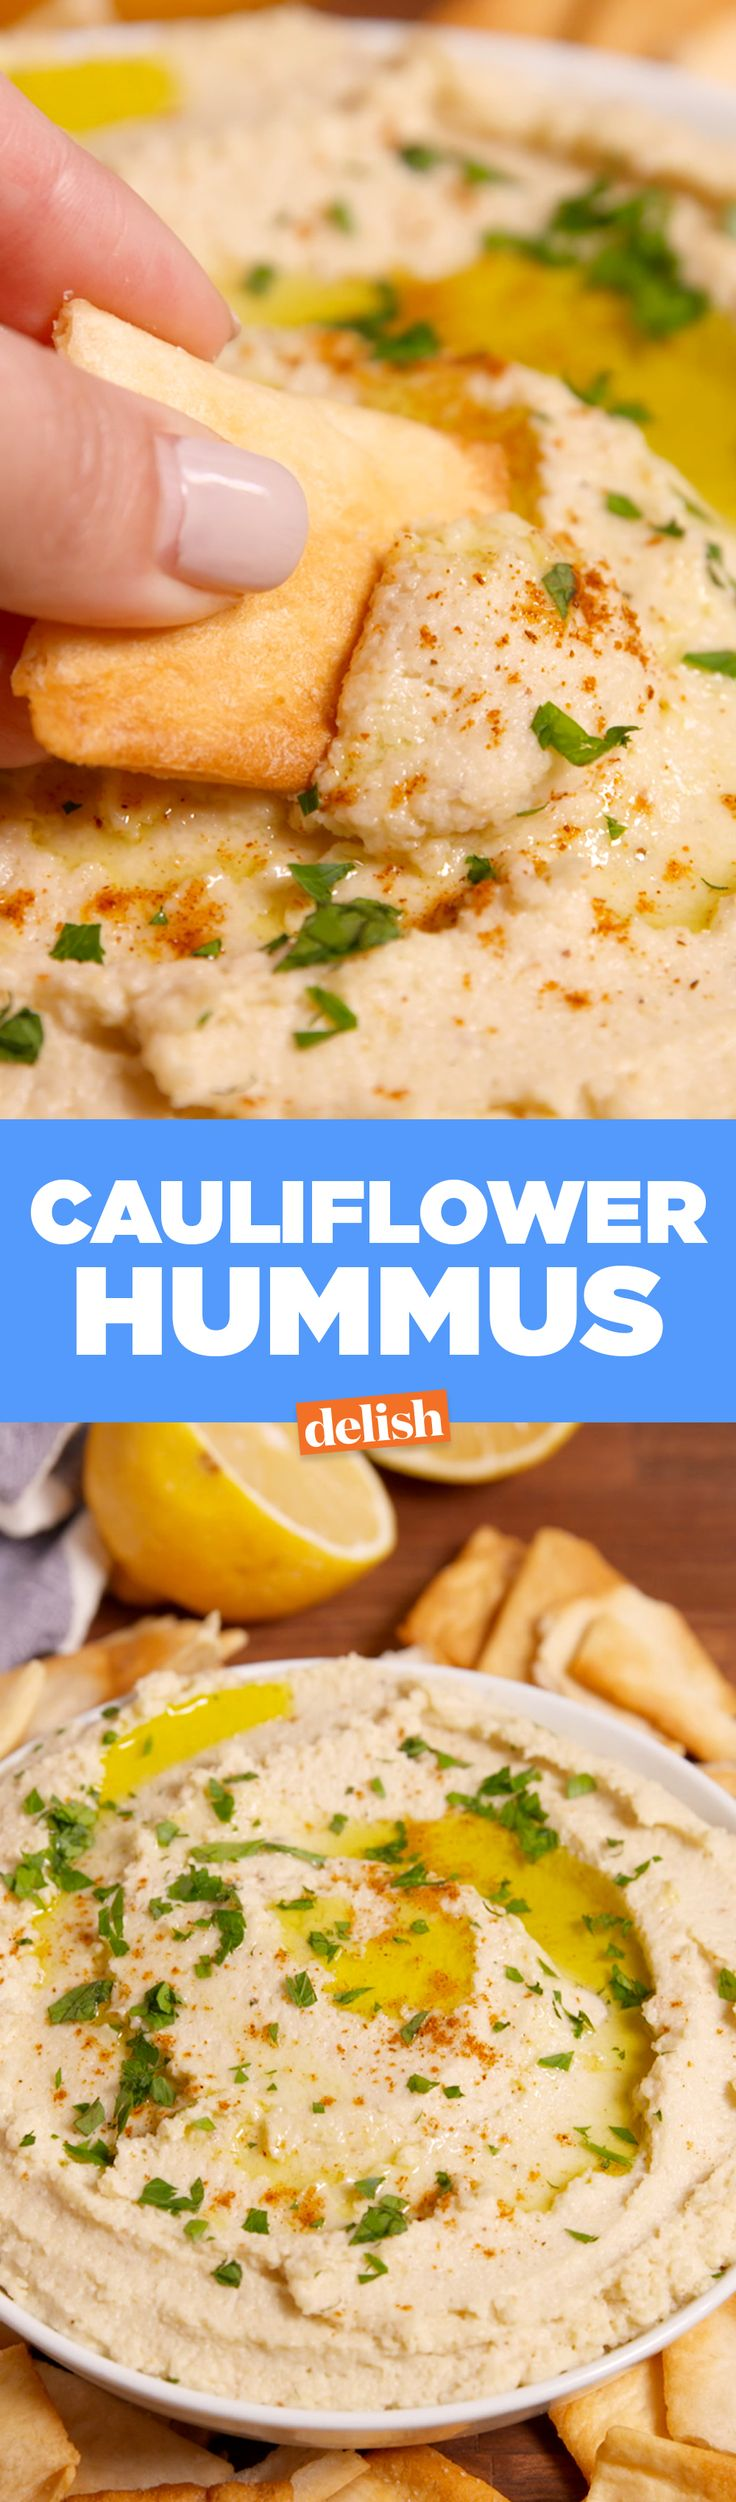 This Cauliflower Hummus is the key to keeping your New Year's resolution. Get the recipe from Delish.com.